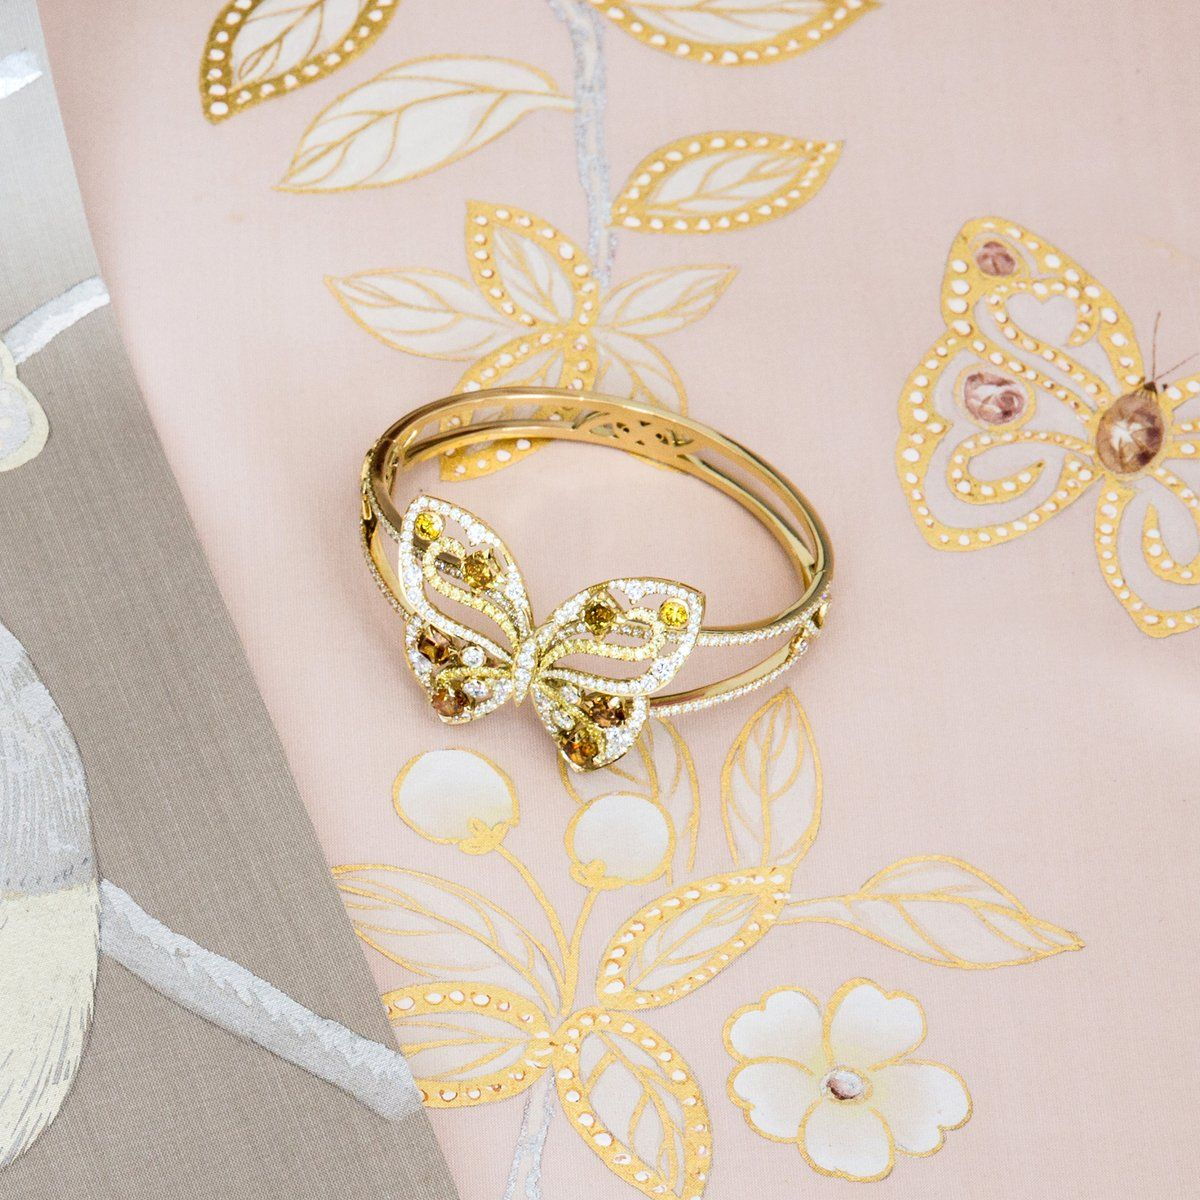 Embedded image  Introducing Boodles' Papillon cuff… the inspiration behind deGournay's bespoke wallpaper created especially for Boodles.